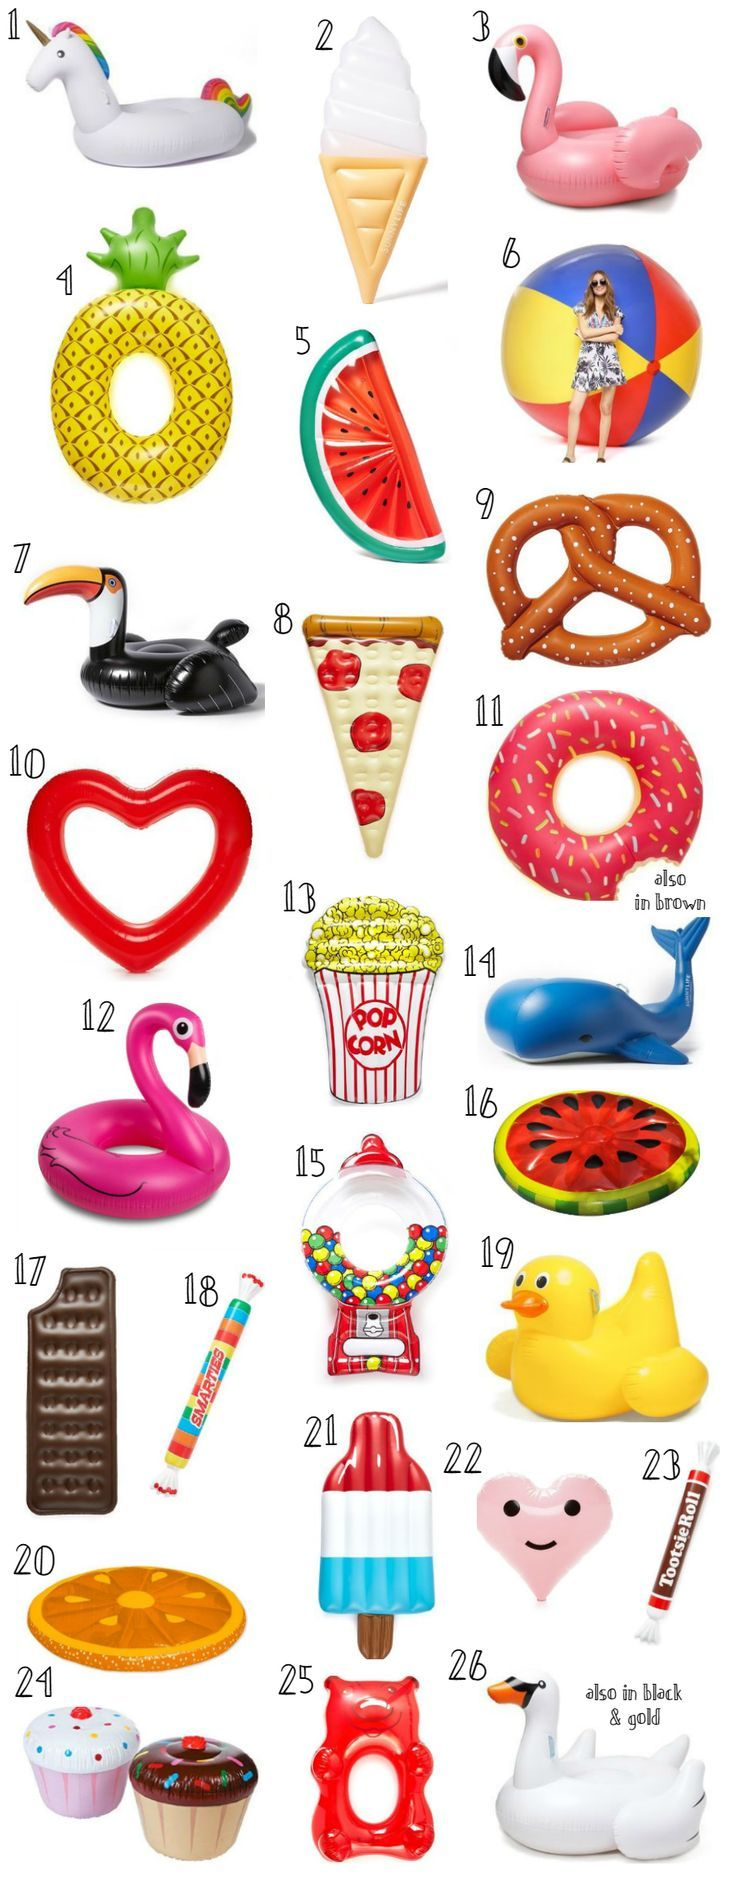 Cute Pool Floats for Adults + Summer Beach Essentials